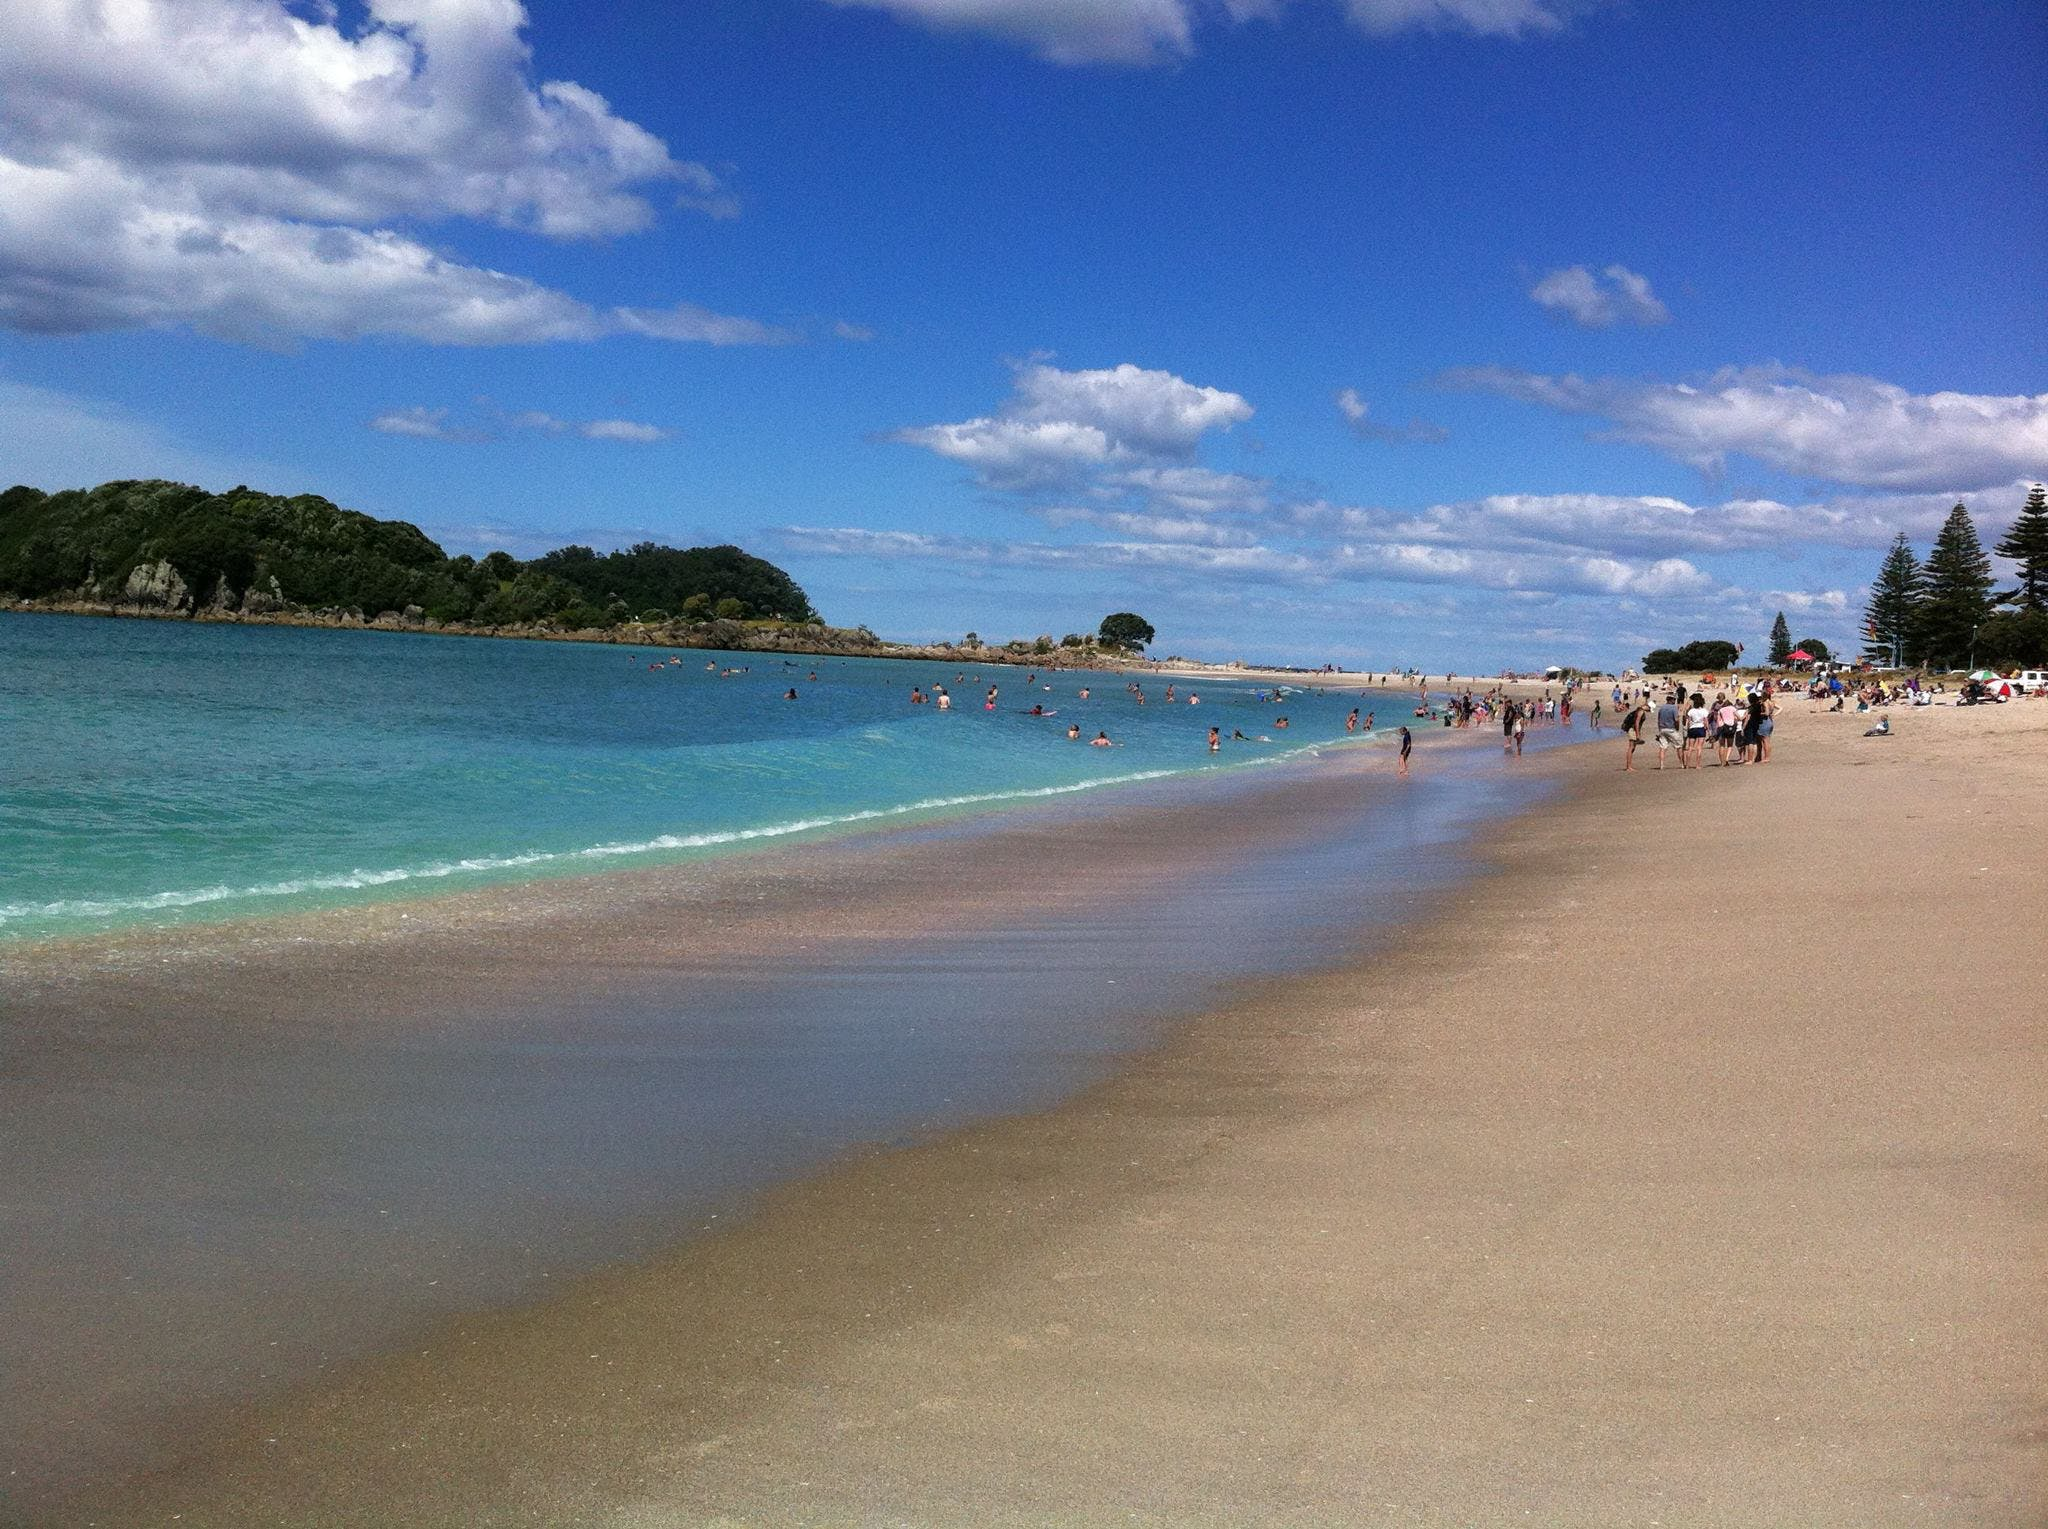 Voted again as New Zealand's #1 beach - Mount Maunganui